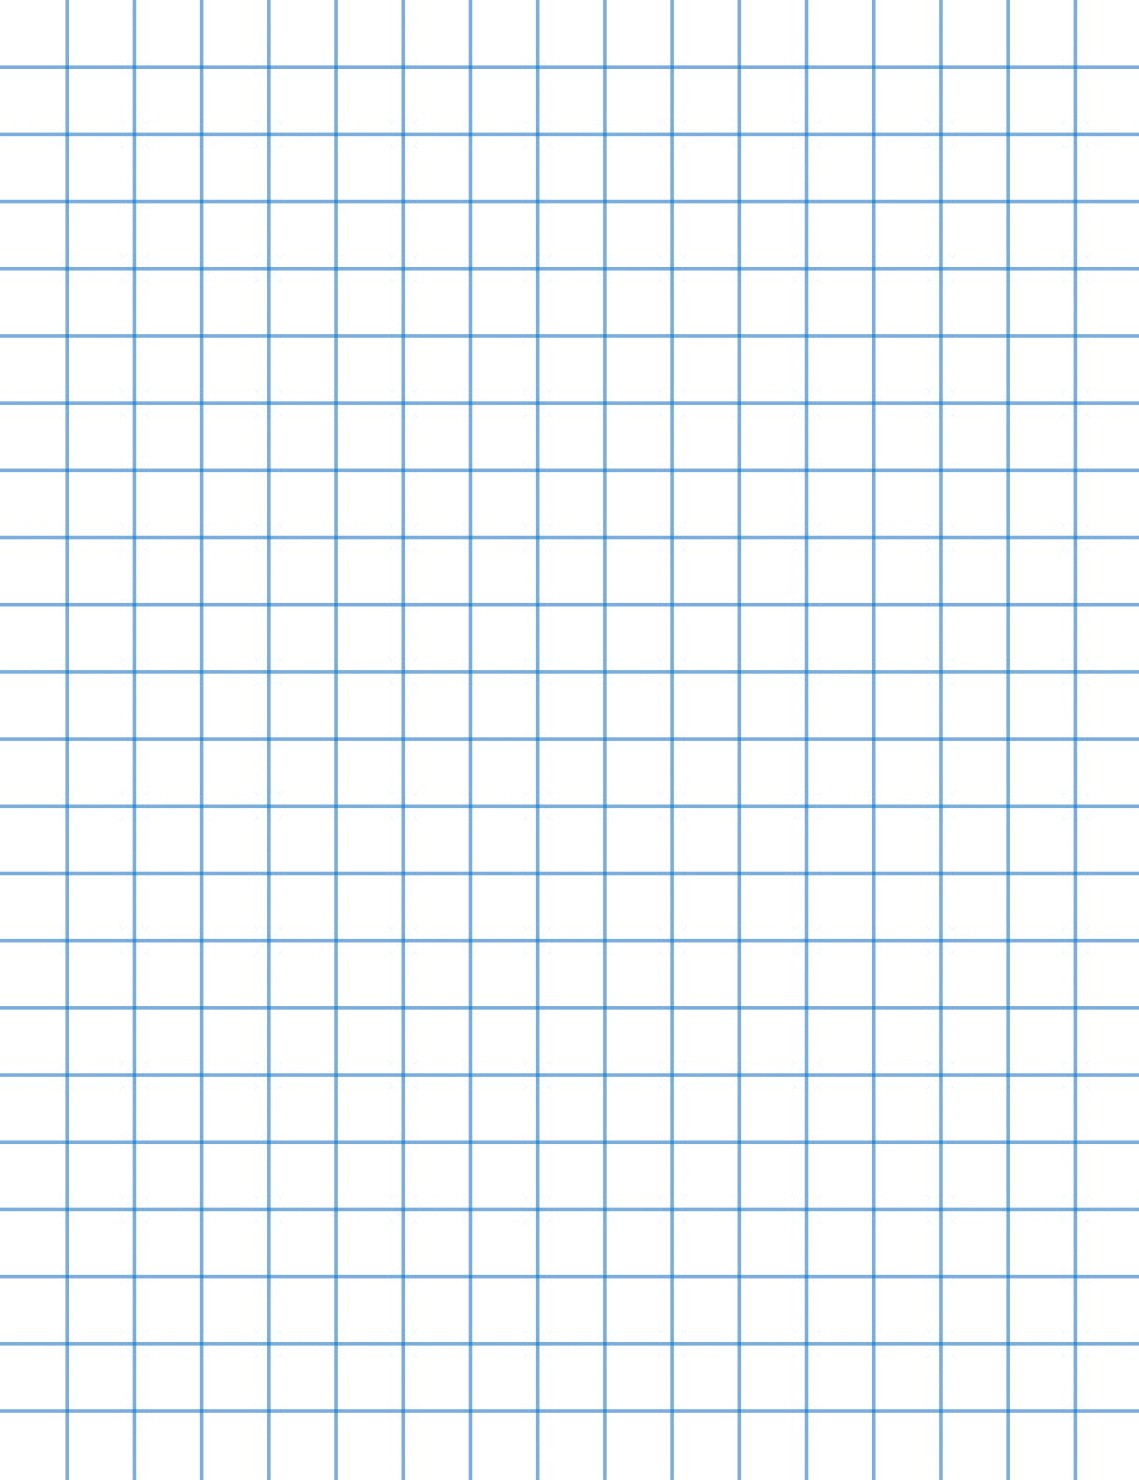 8-1/2 X 11 Graph Paper, White, 16#, 1/4 Rule, Two Sides - 500/Ream